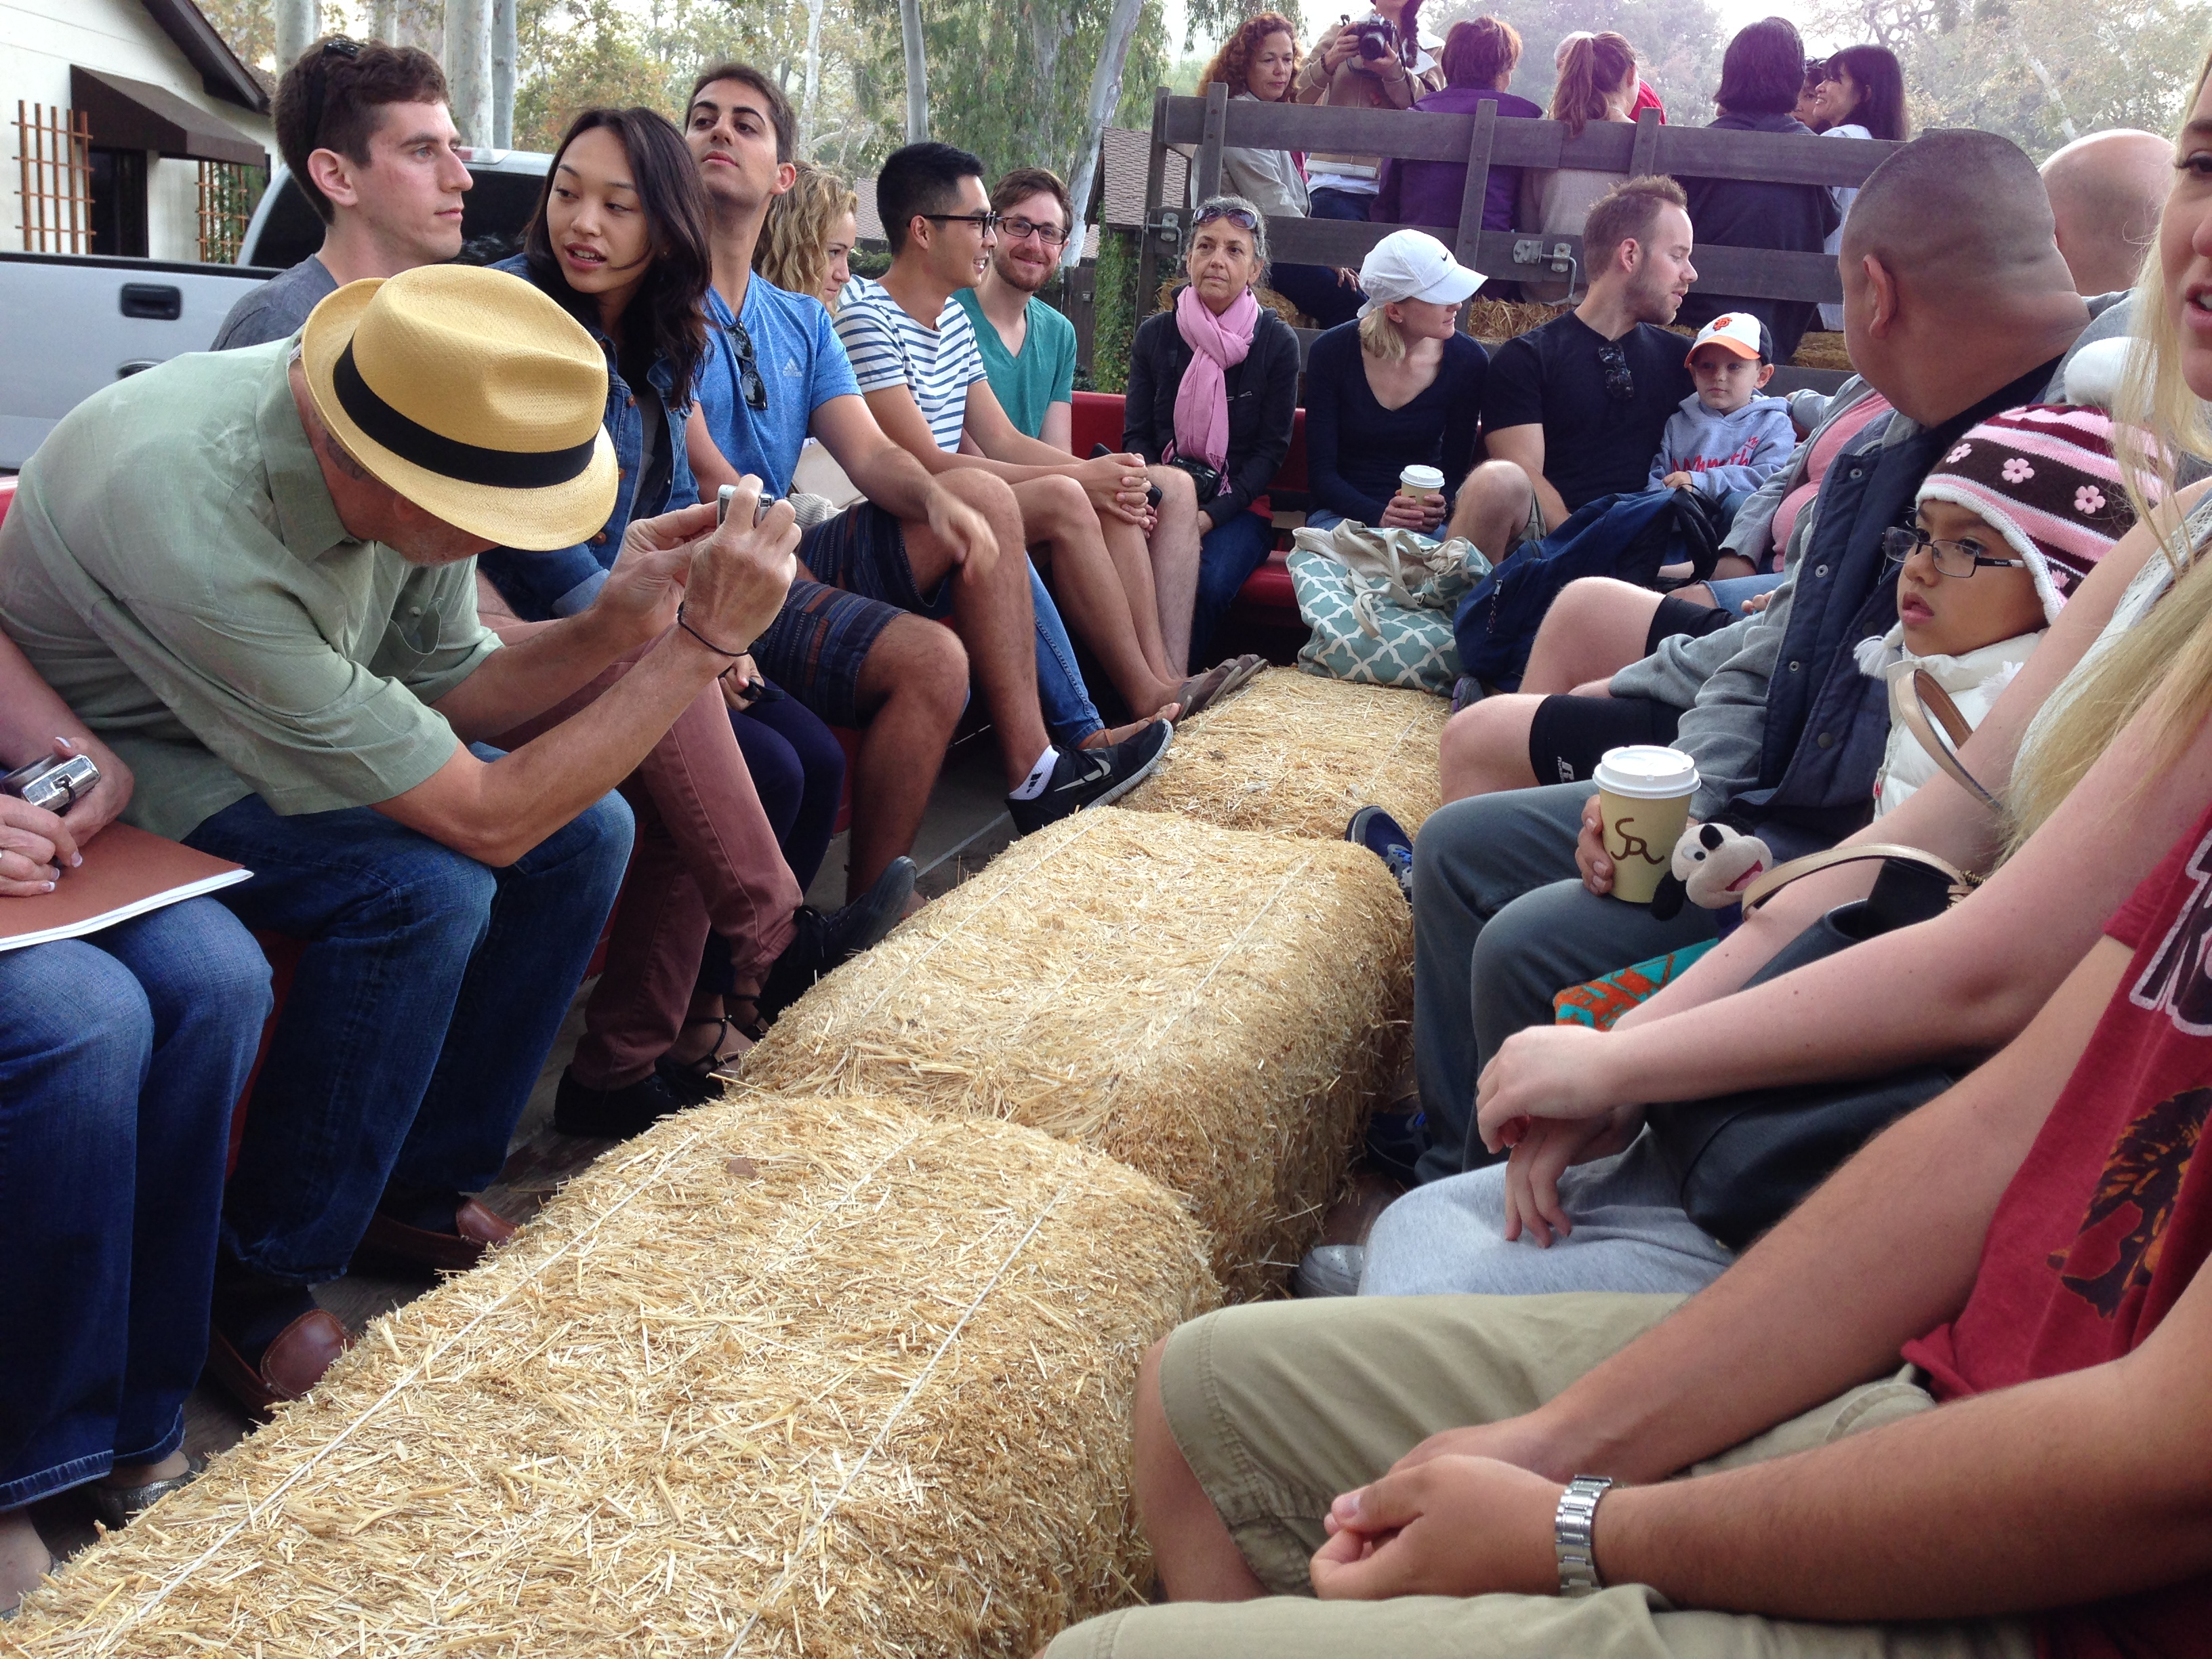 People avoided the hay bale seating in the transport wagon for as long as possible. Who knows what kinds of wood insect, fecal particulate and poor lumbar support you were signing up for?